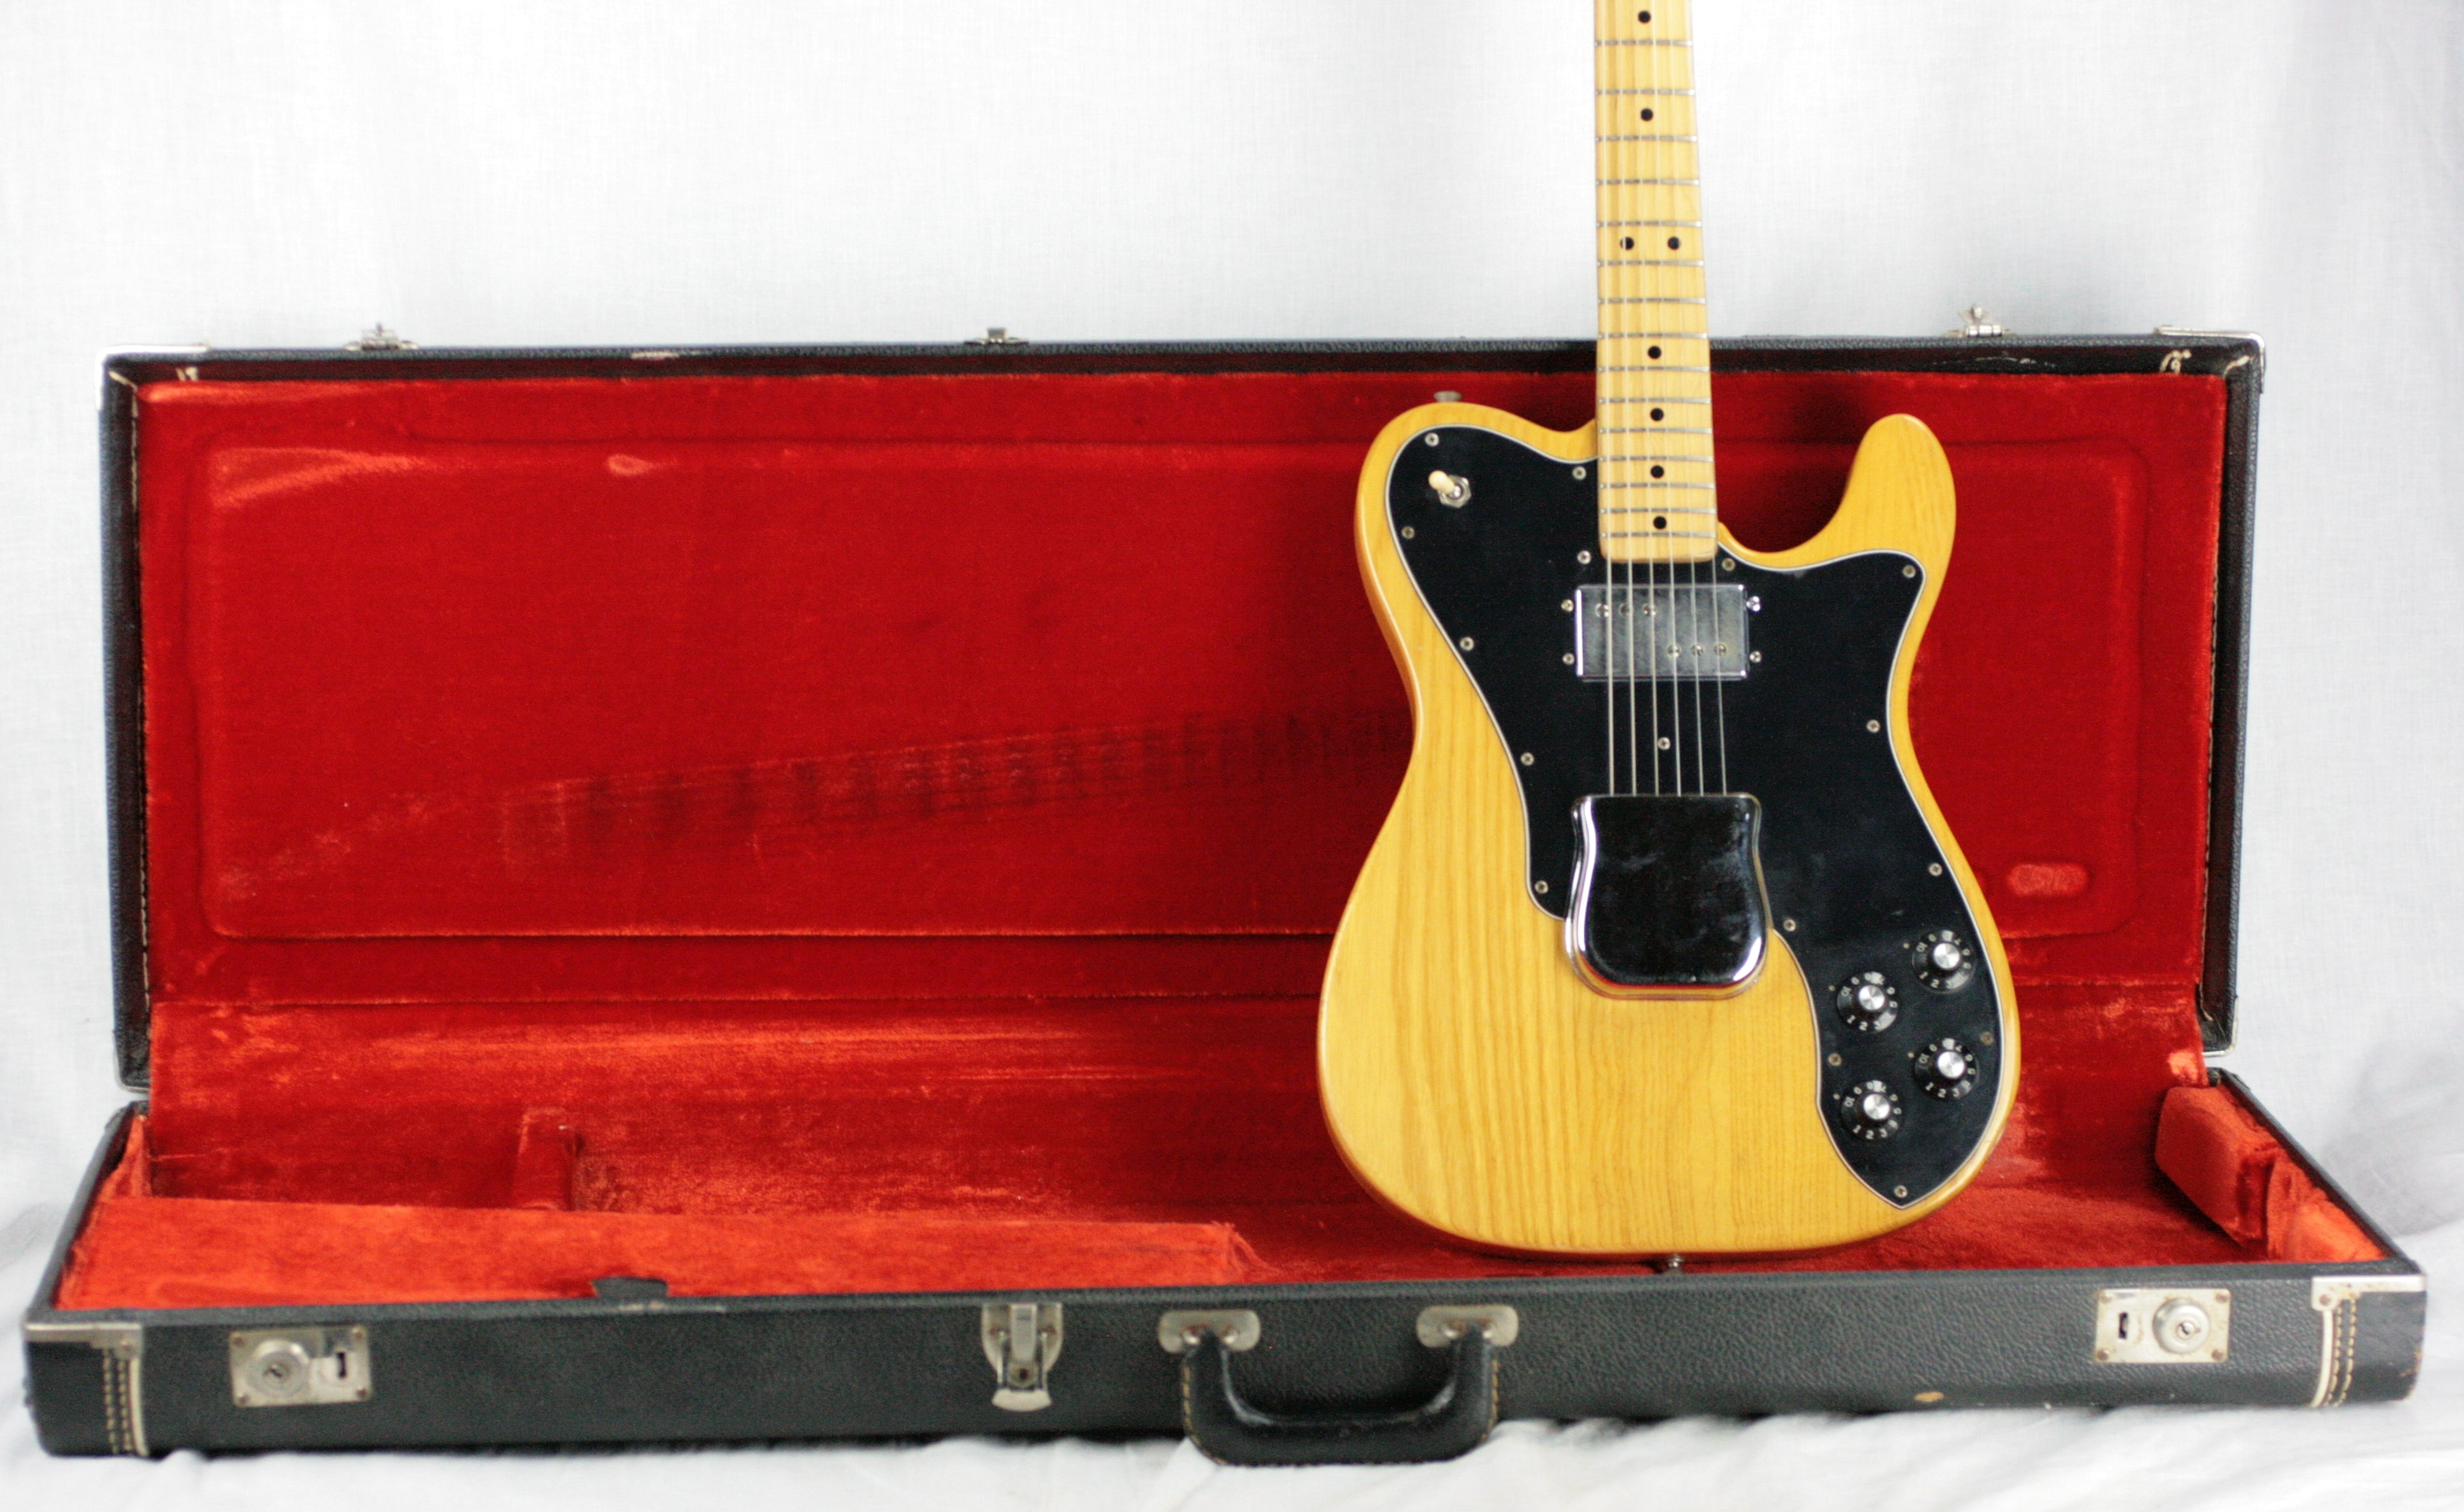 1976 Fender Telecaster Custom in Natural - 100% Original, Lightweight Tele, Keith Richards, 1970's